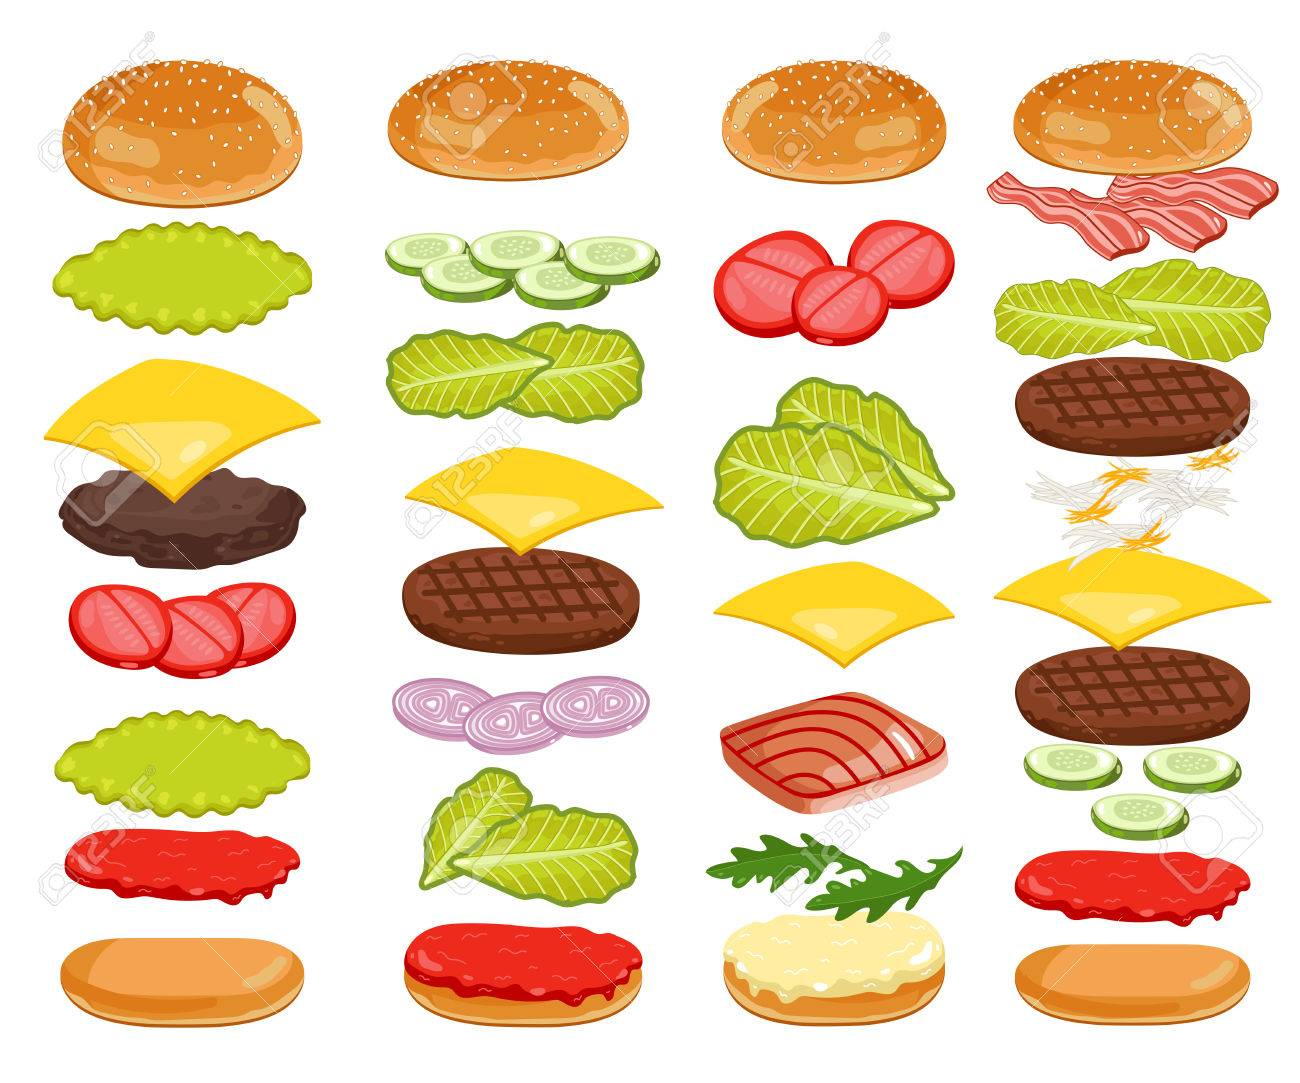 Burger isolated. Burger ingredients on white backgrounds. Bun, Cheese, Beef, Salad, Ketchup. Vector Burger Icon Set. - 51300488